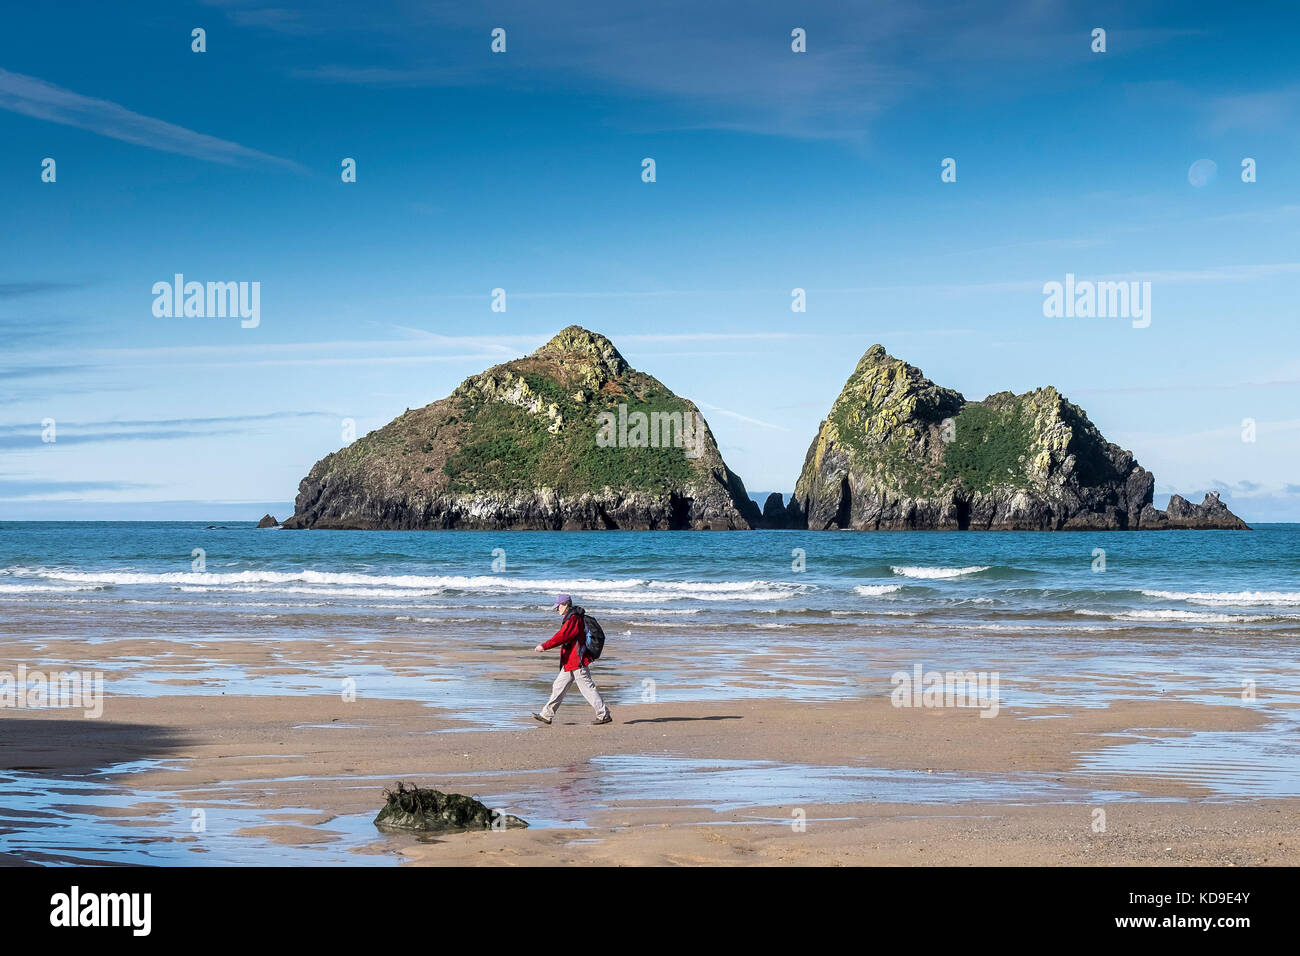 Holywell Bay Cornwall - a walker on the beach at low tide at Holywell Bay with the iconic Gull Rocks in the background - Stock Image